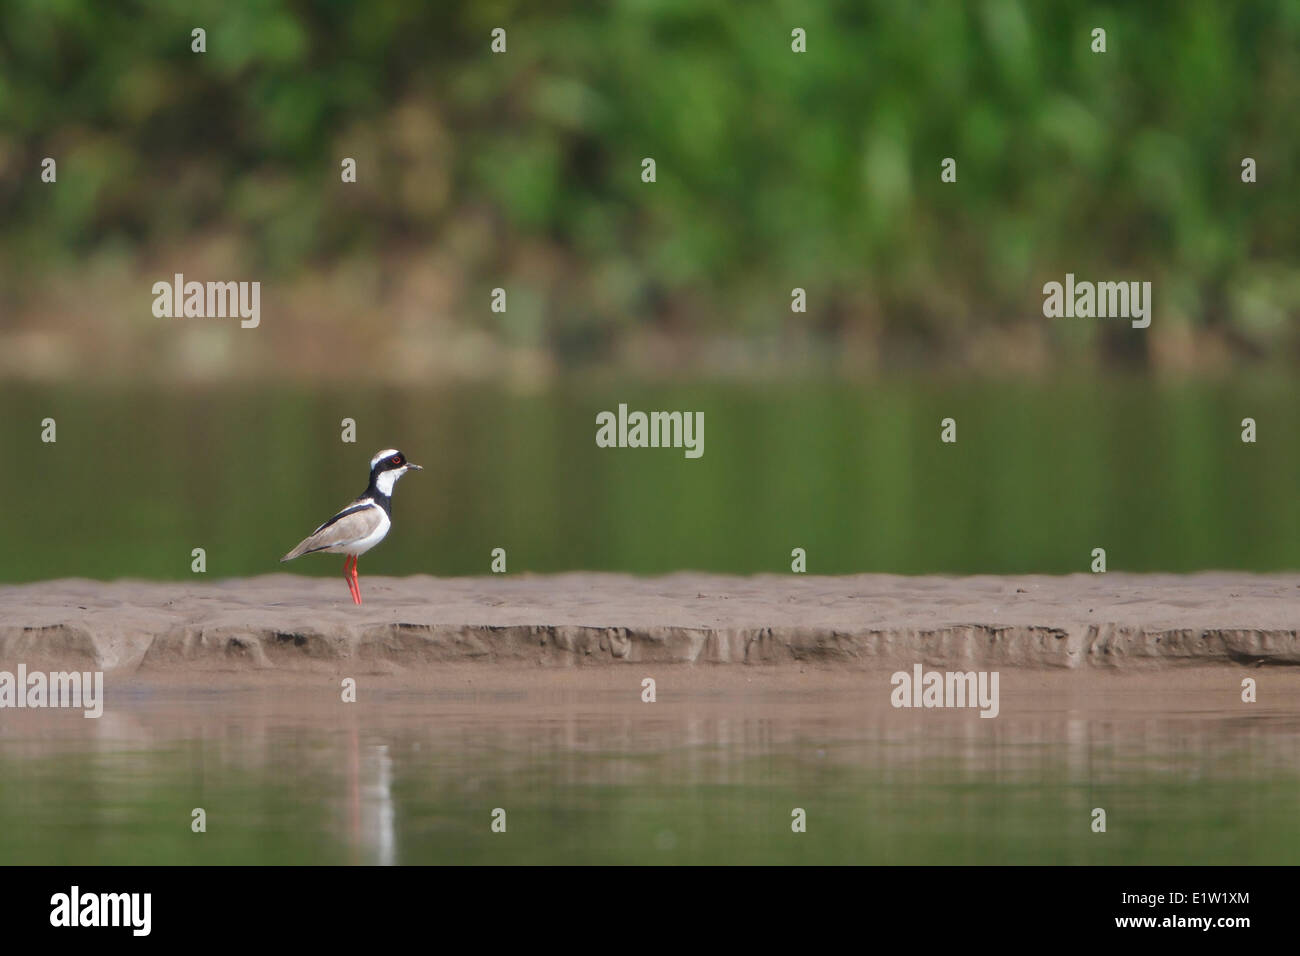 Pied Lapwing (Vanellus cayanus) perched on the shoreline in Peru. - Stock Image